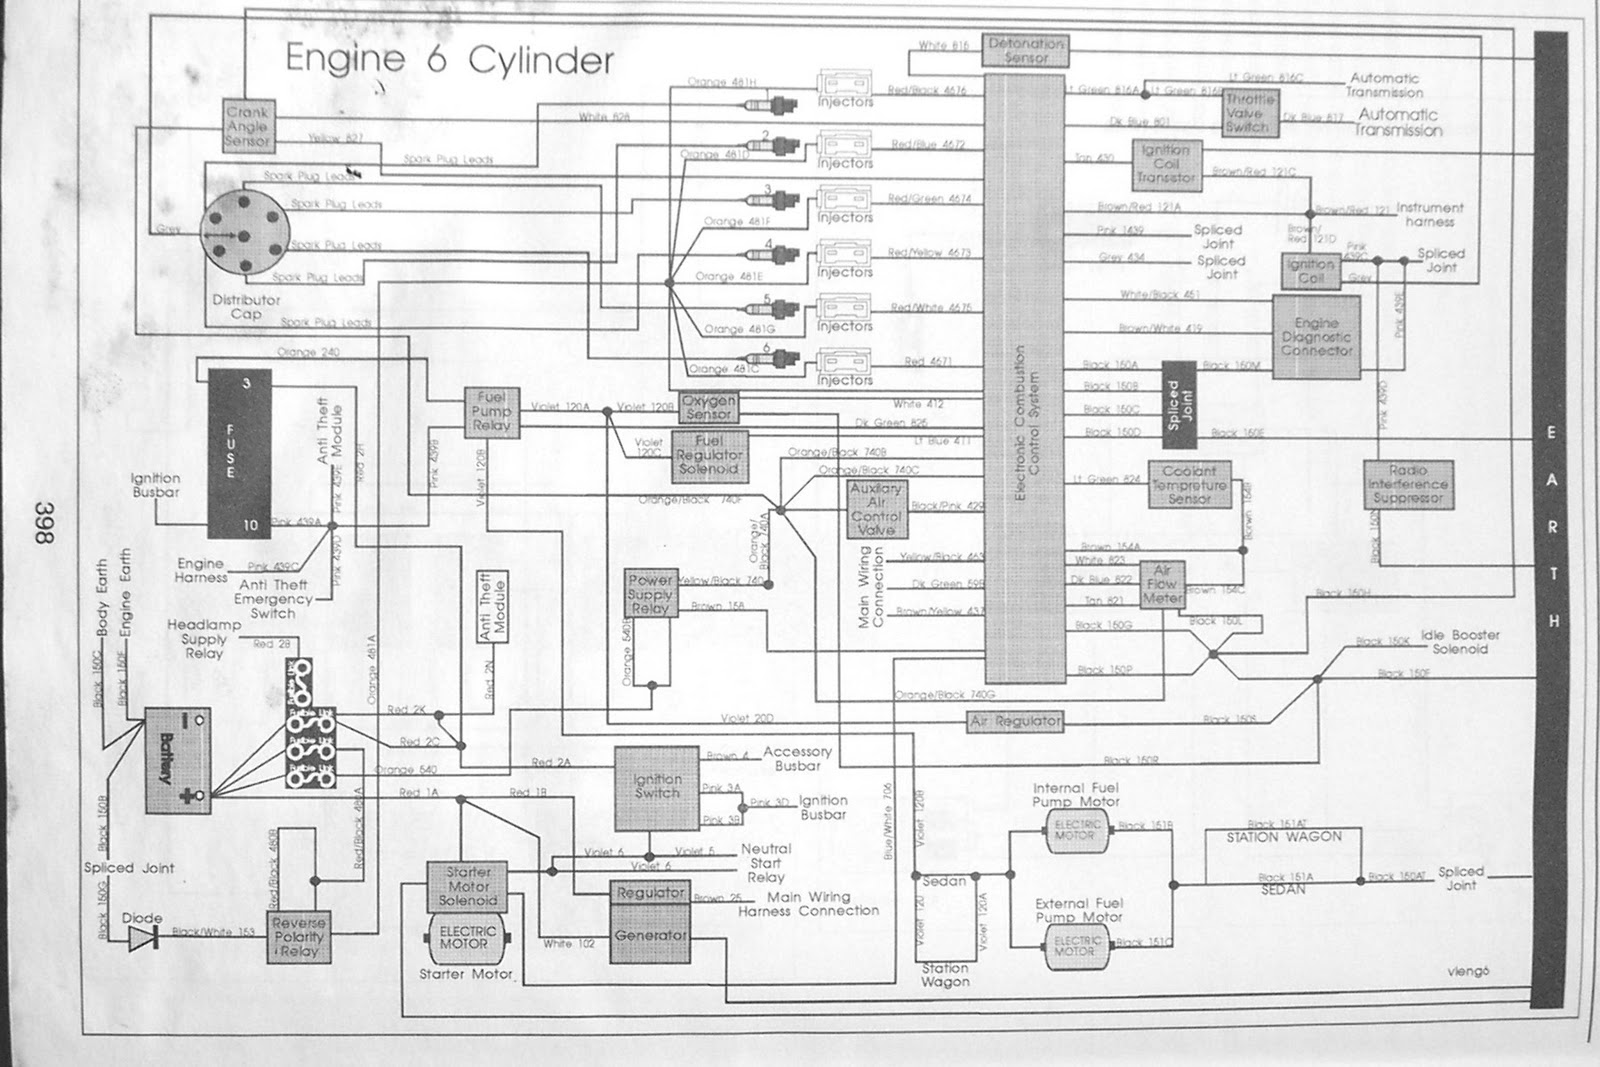 14b vt commodore wiring diagram efcaviation com vl commodore ecu wiring diagram at reclaimingppi.co